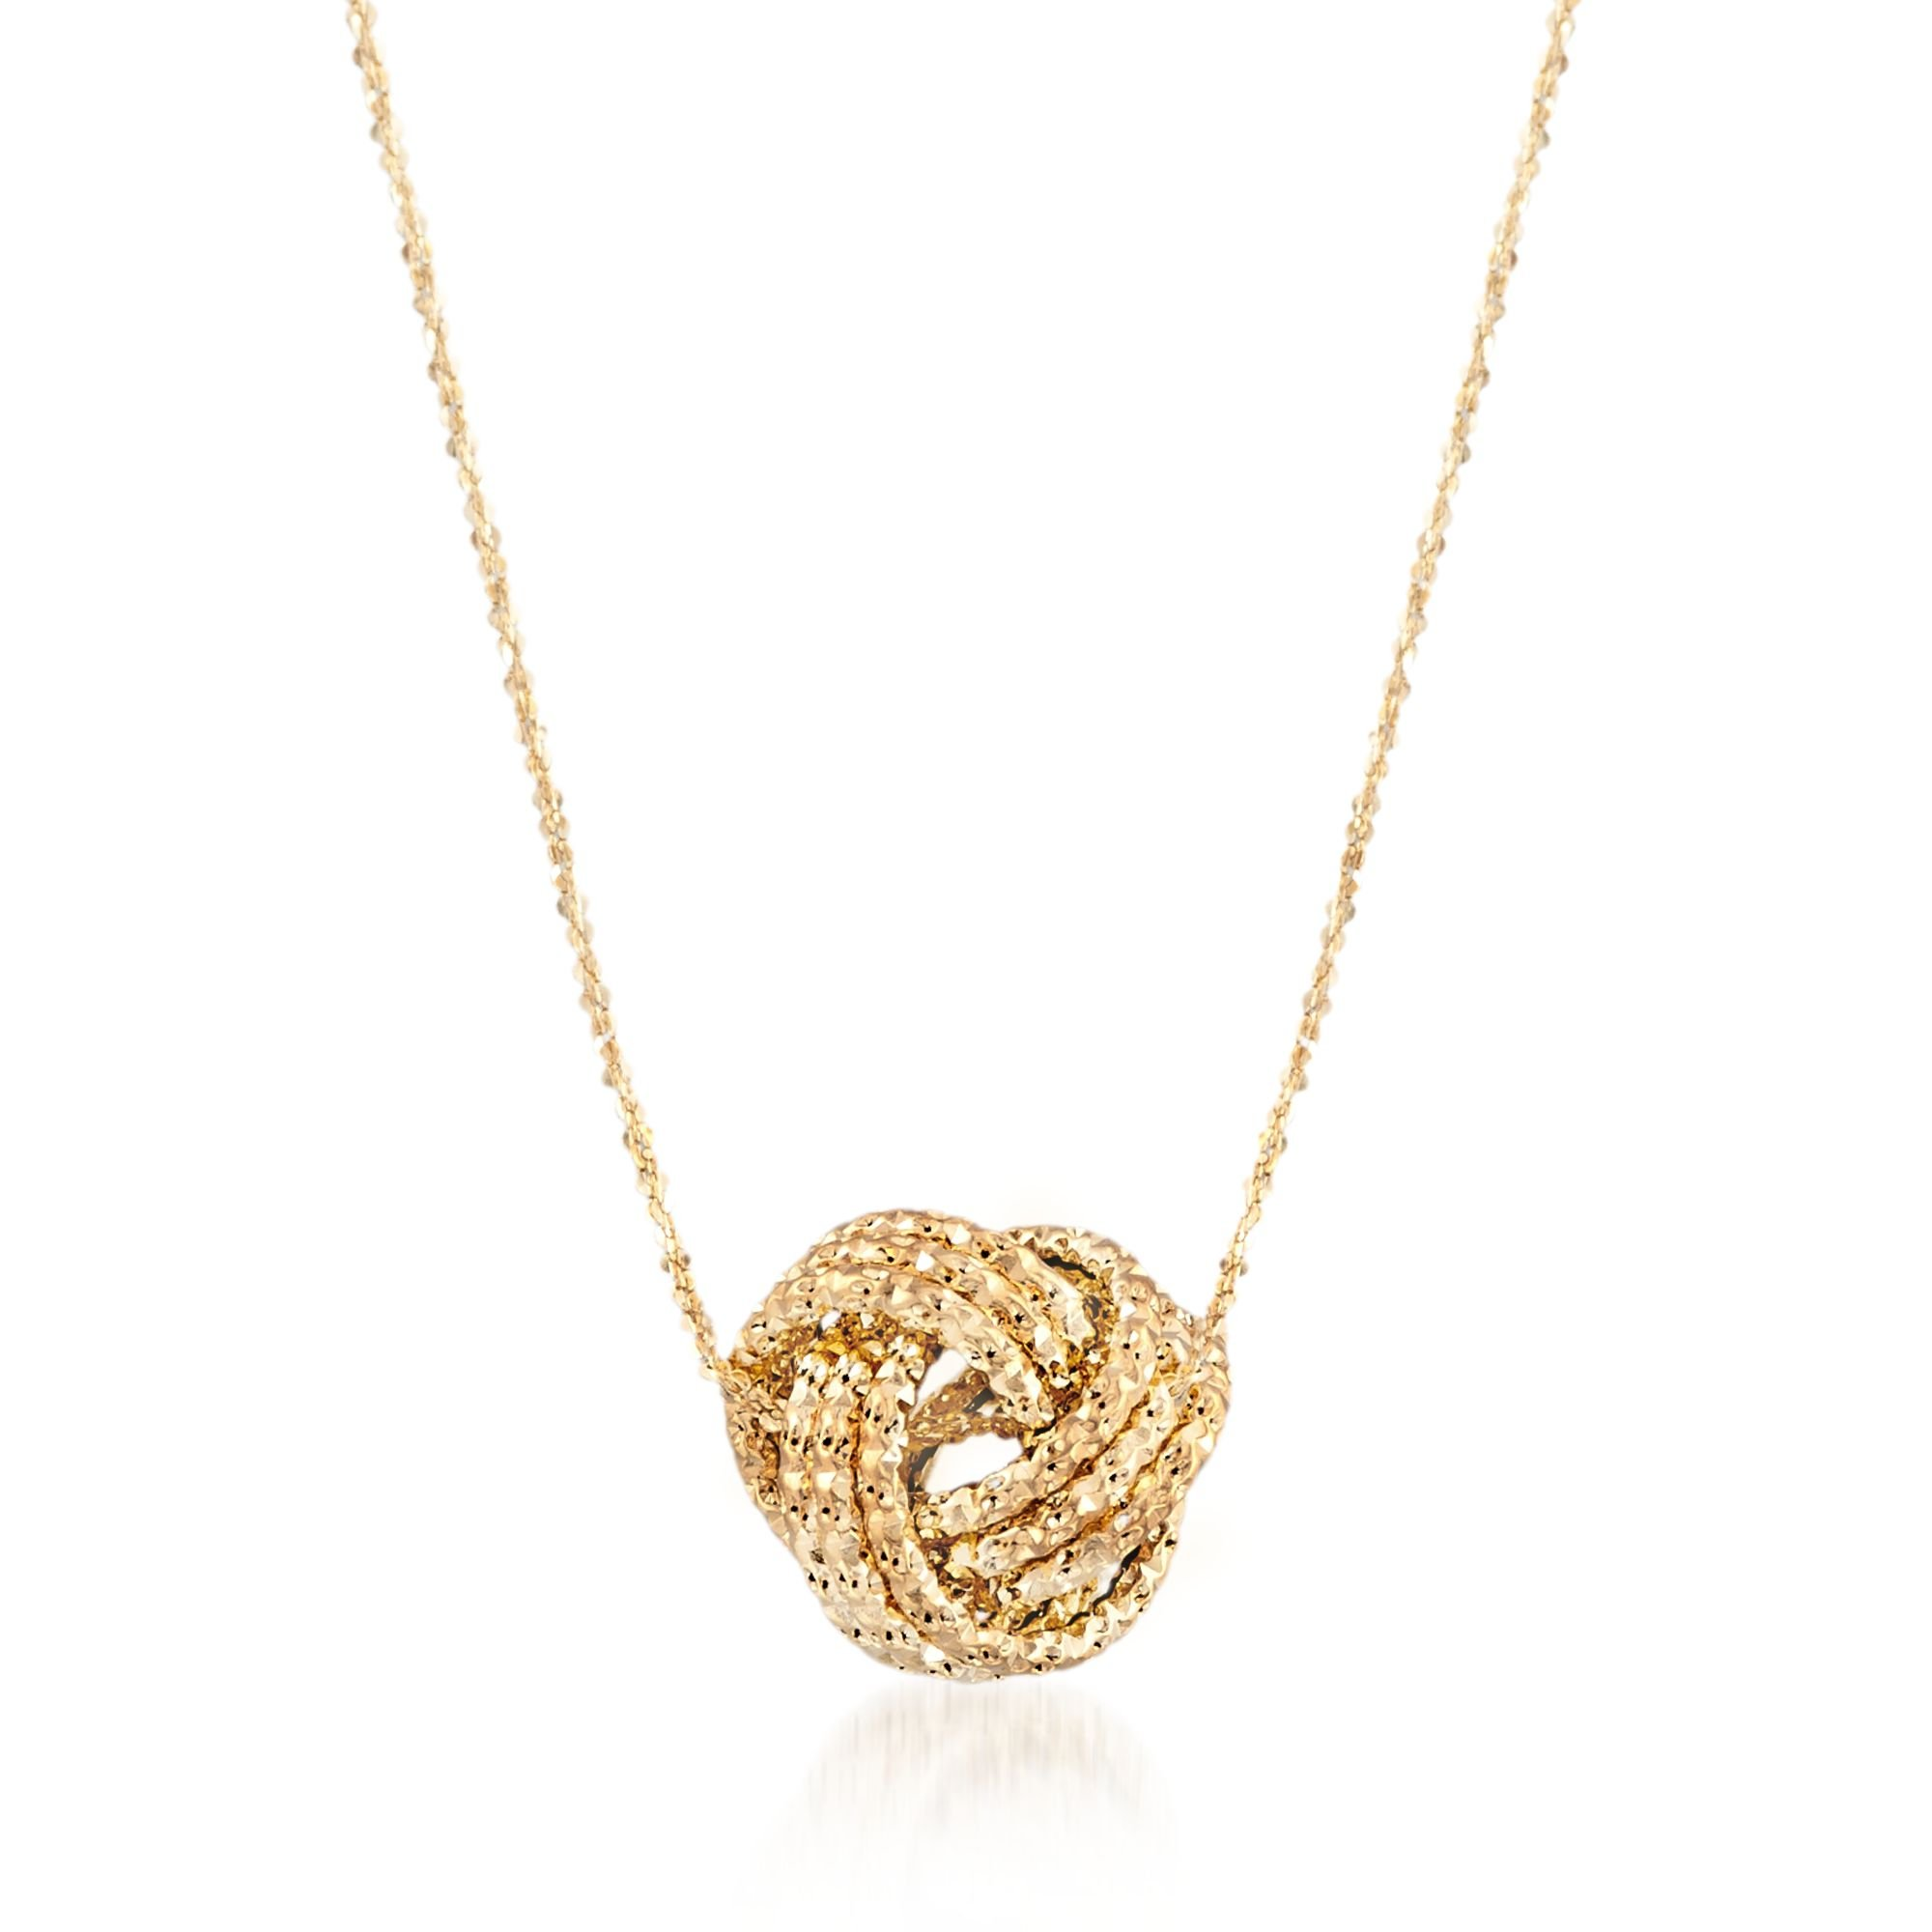 Ross-Simons Italian 14kt Yellow Gold Textured Love Knot Necklace